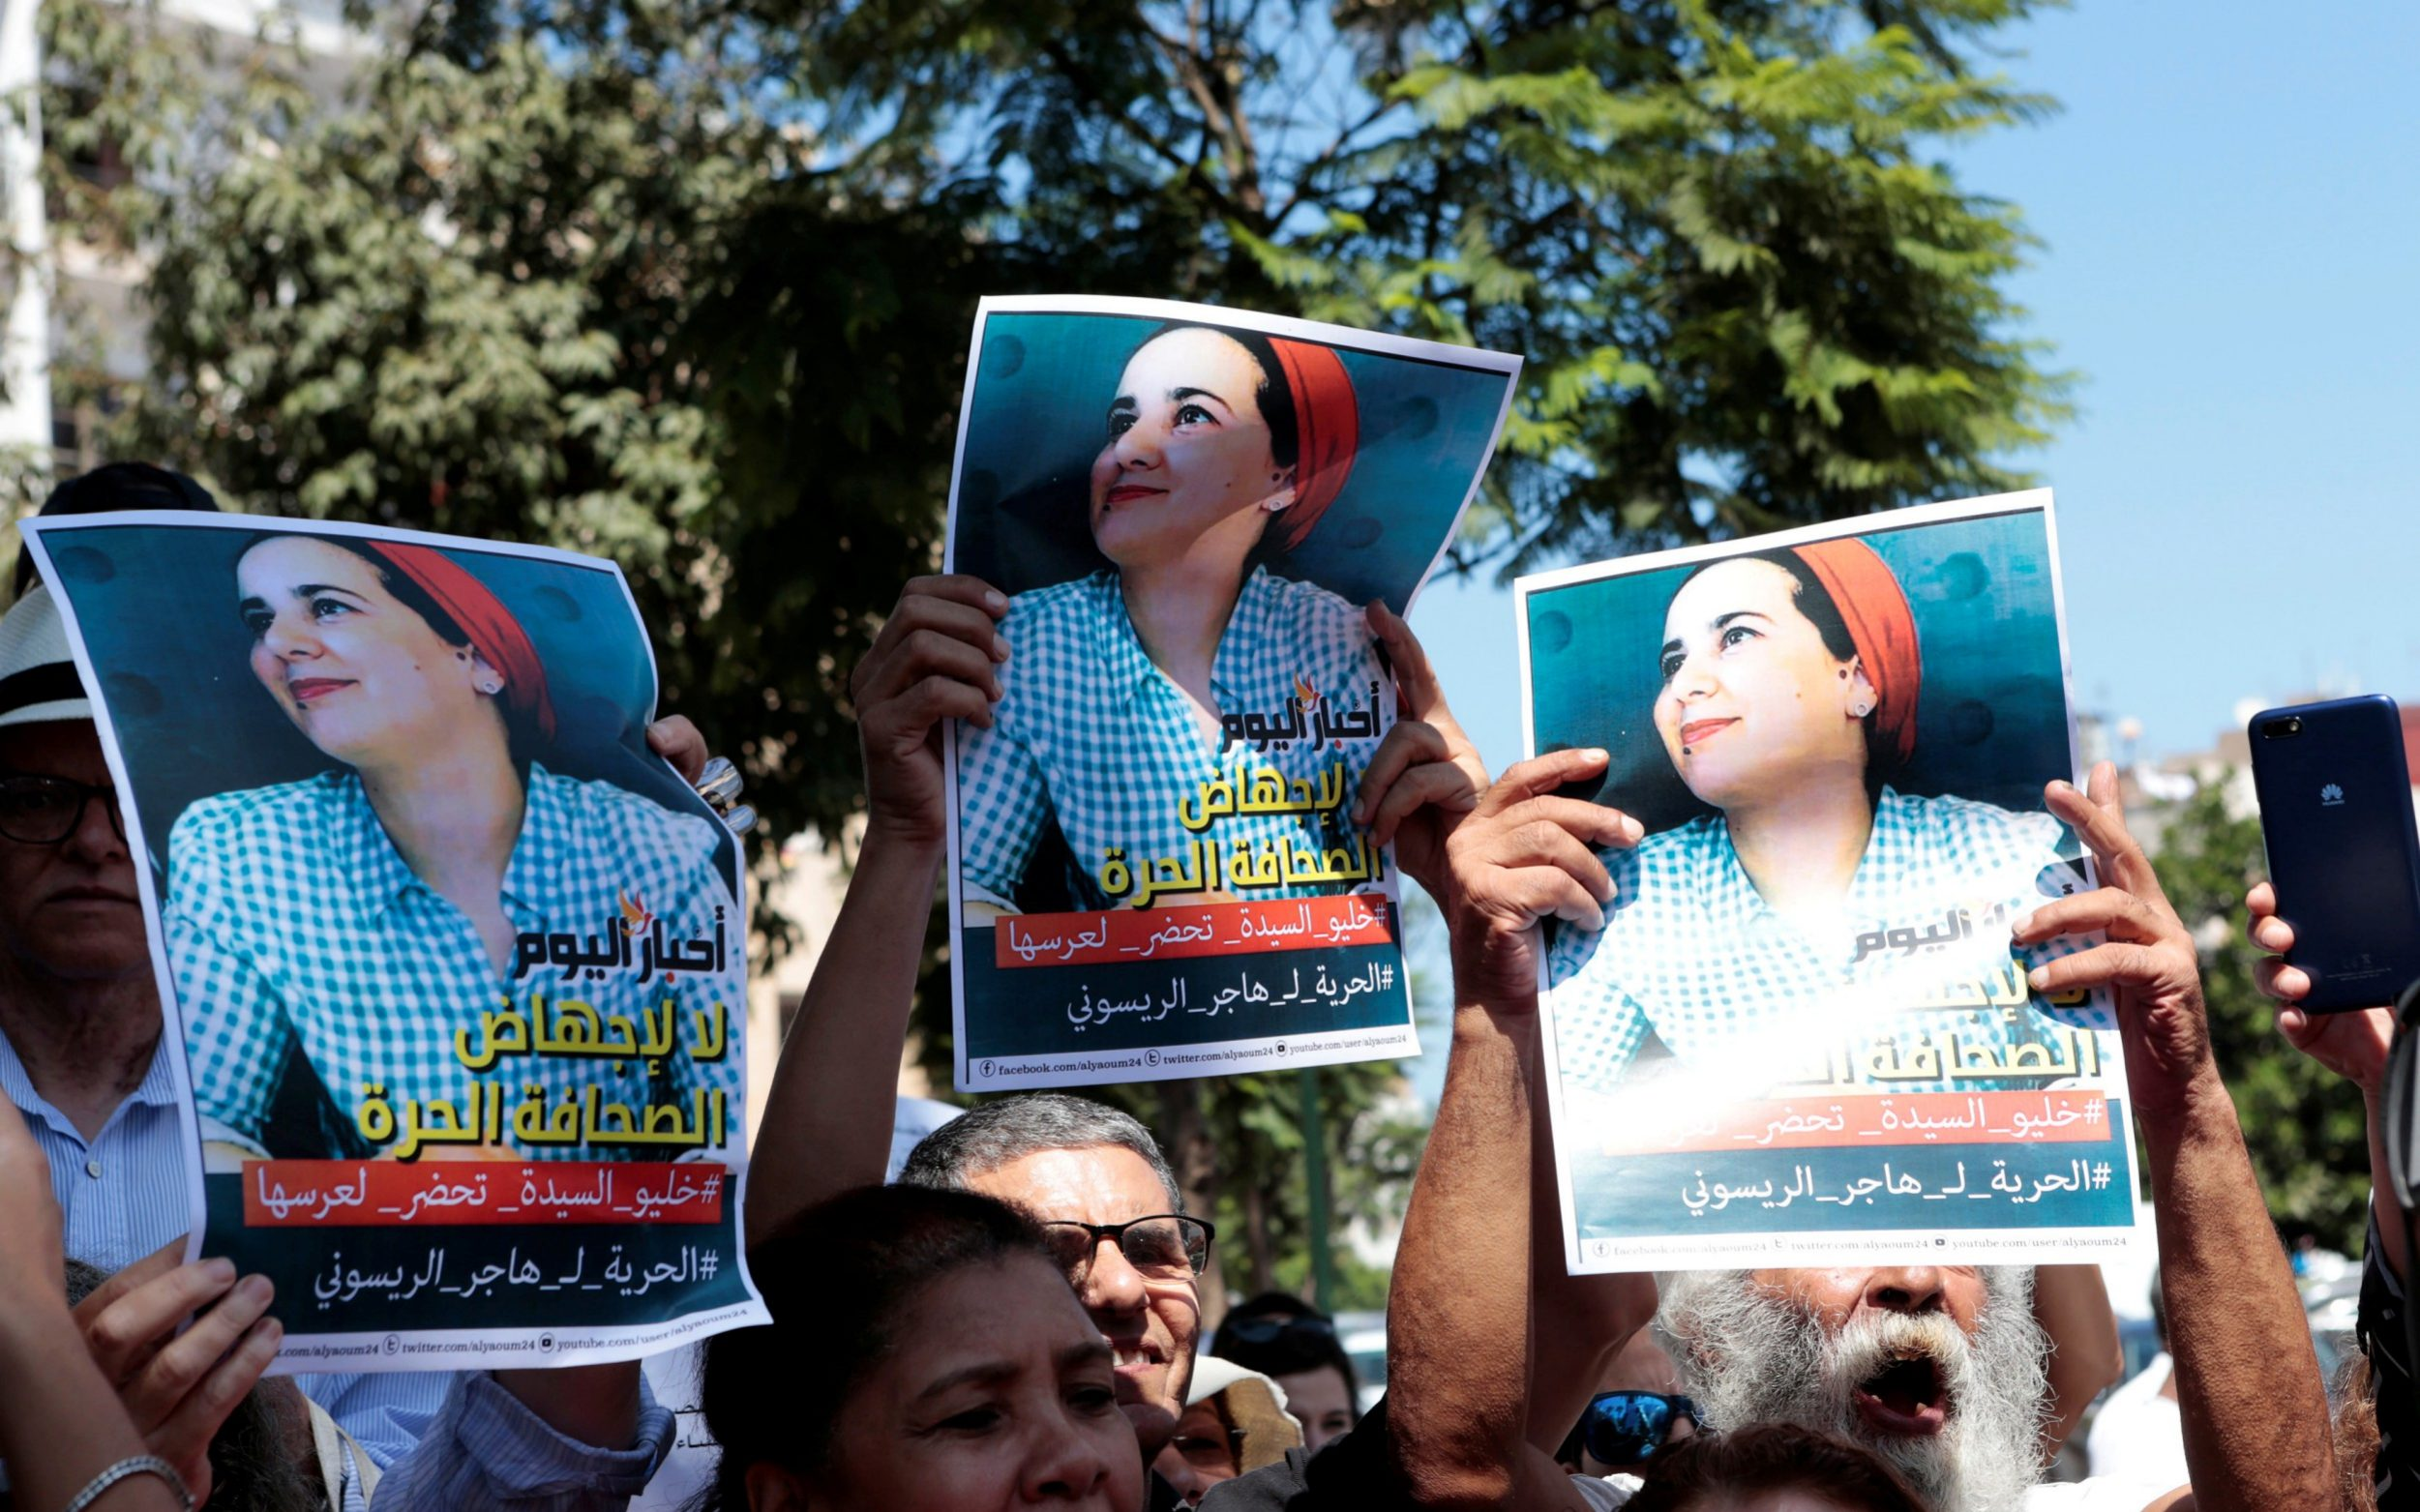 Sentenced to one year in prison a Moroccan journalist for abortion and extramarital affairs